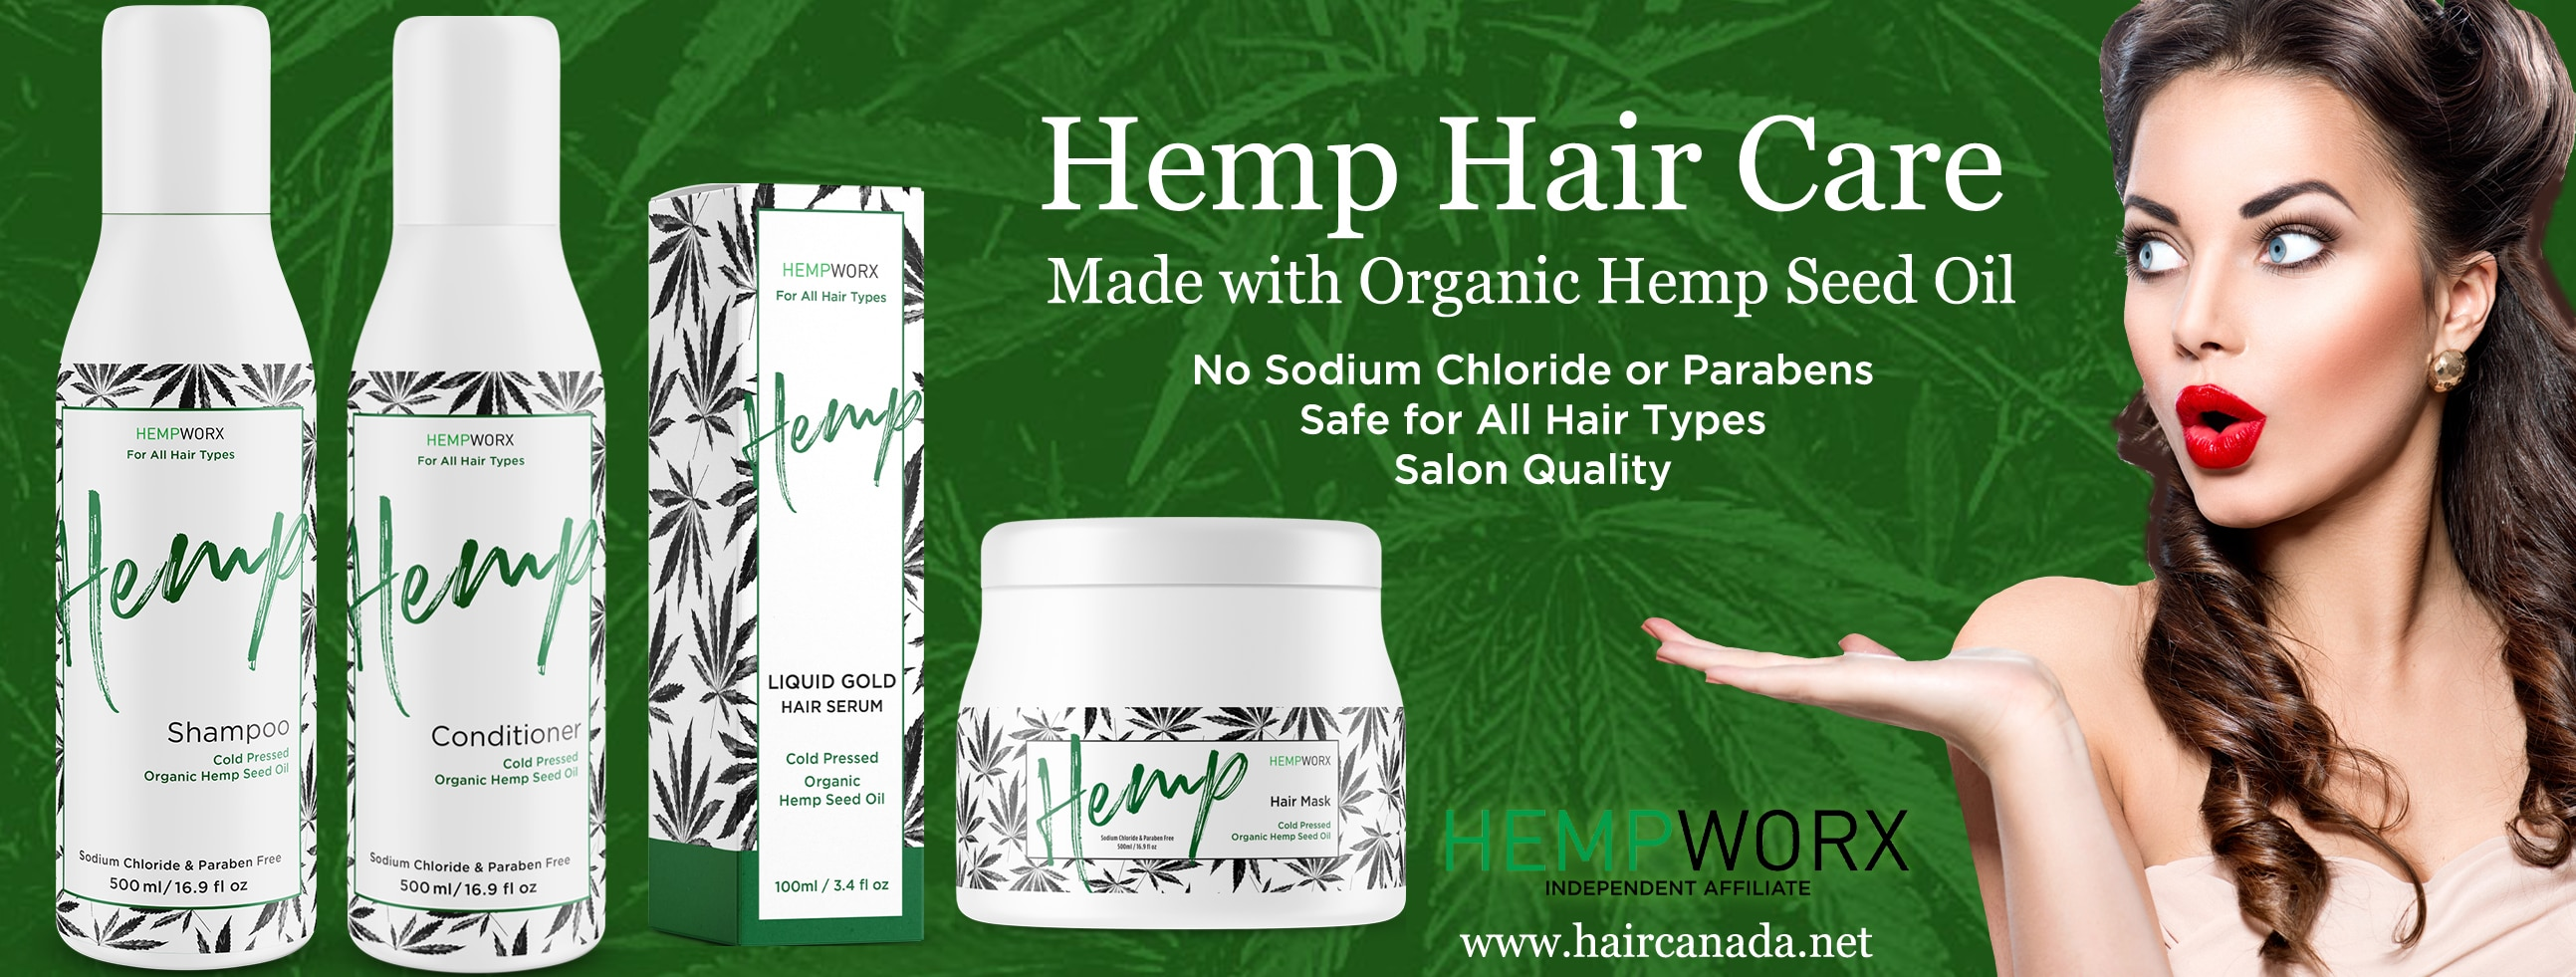 new mlm 2020 hair care hempworx